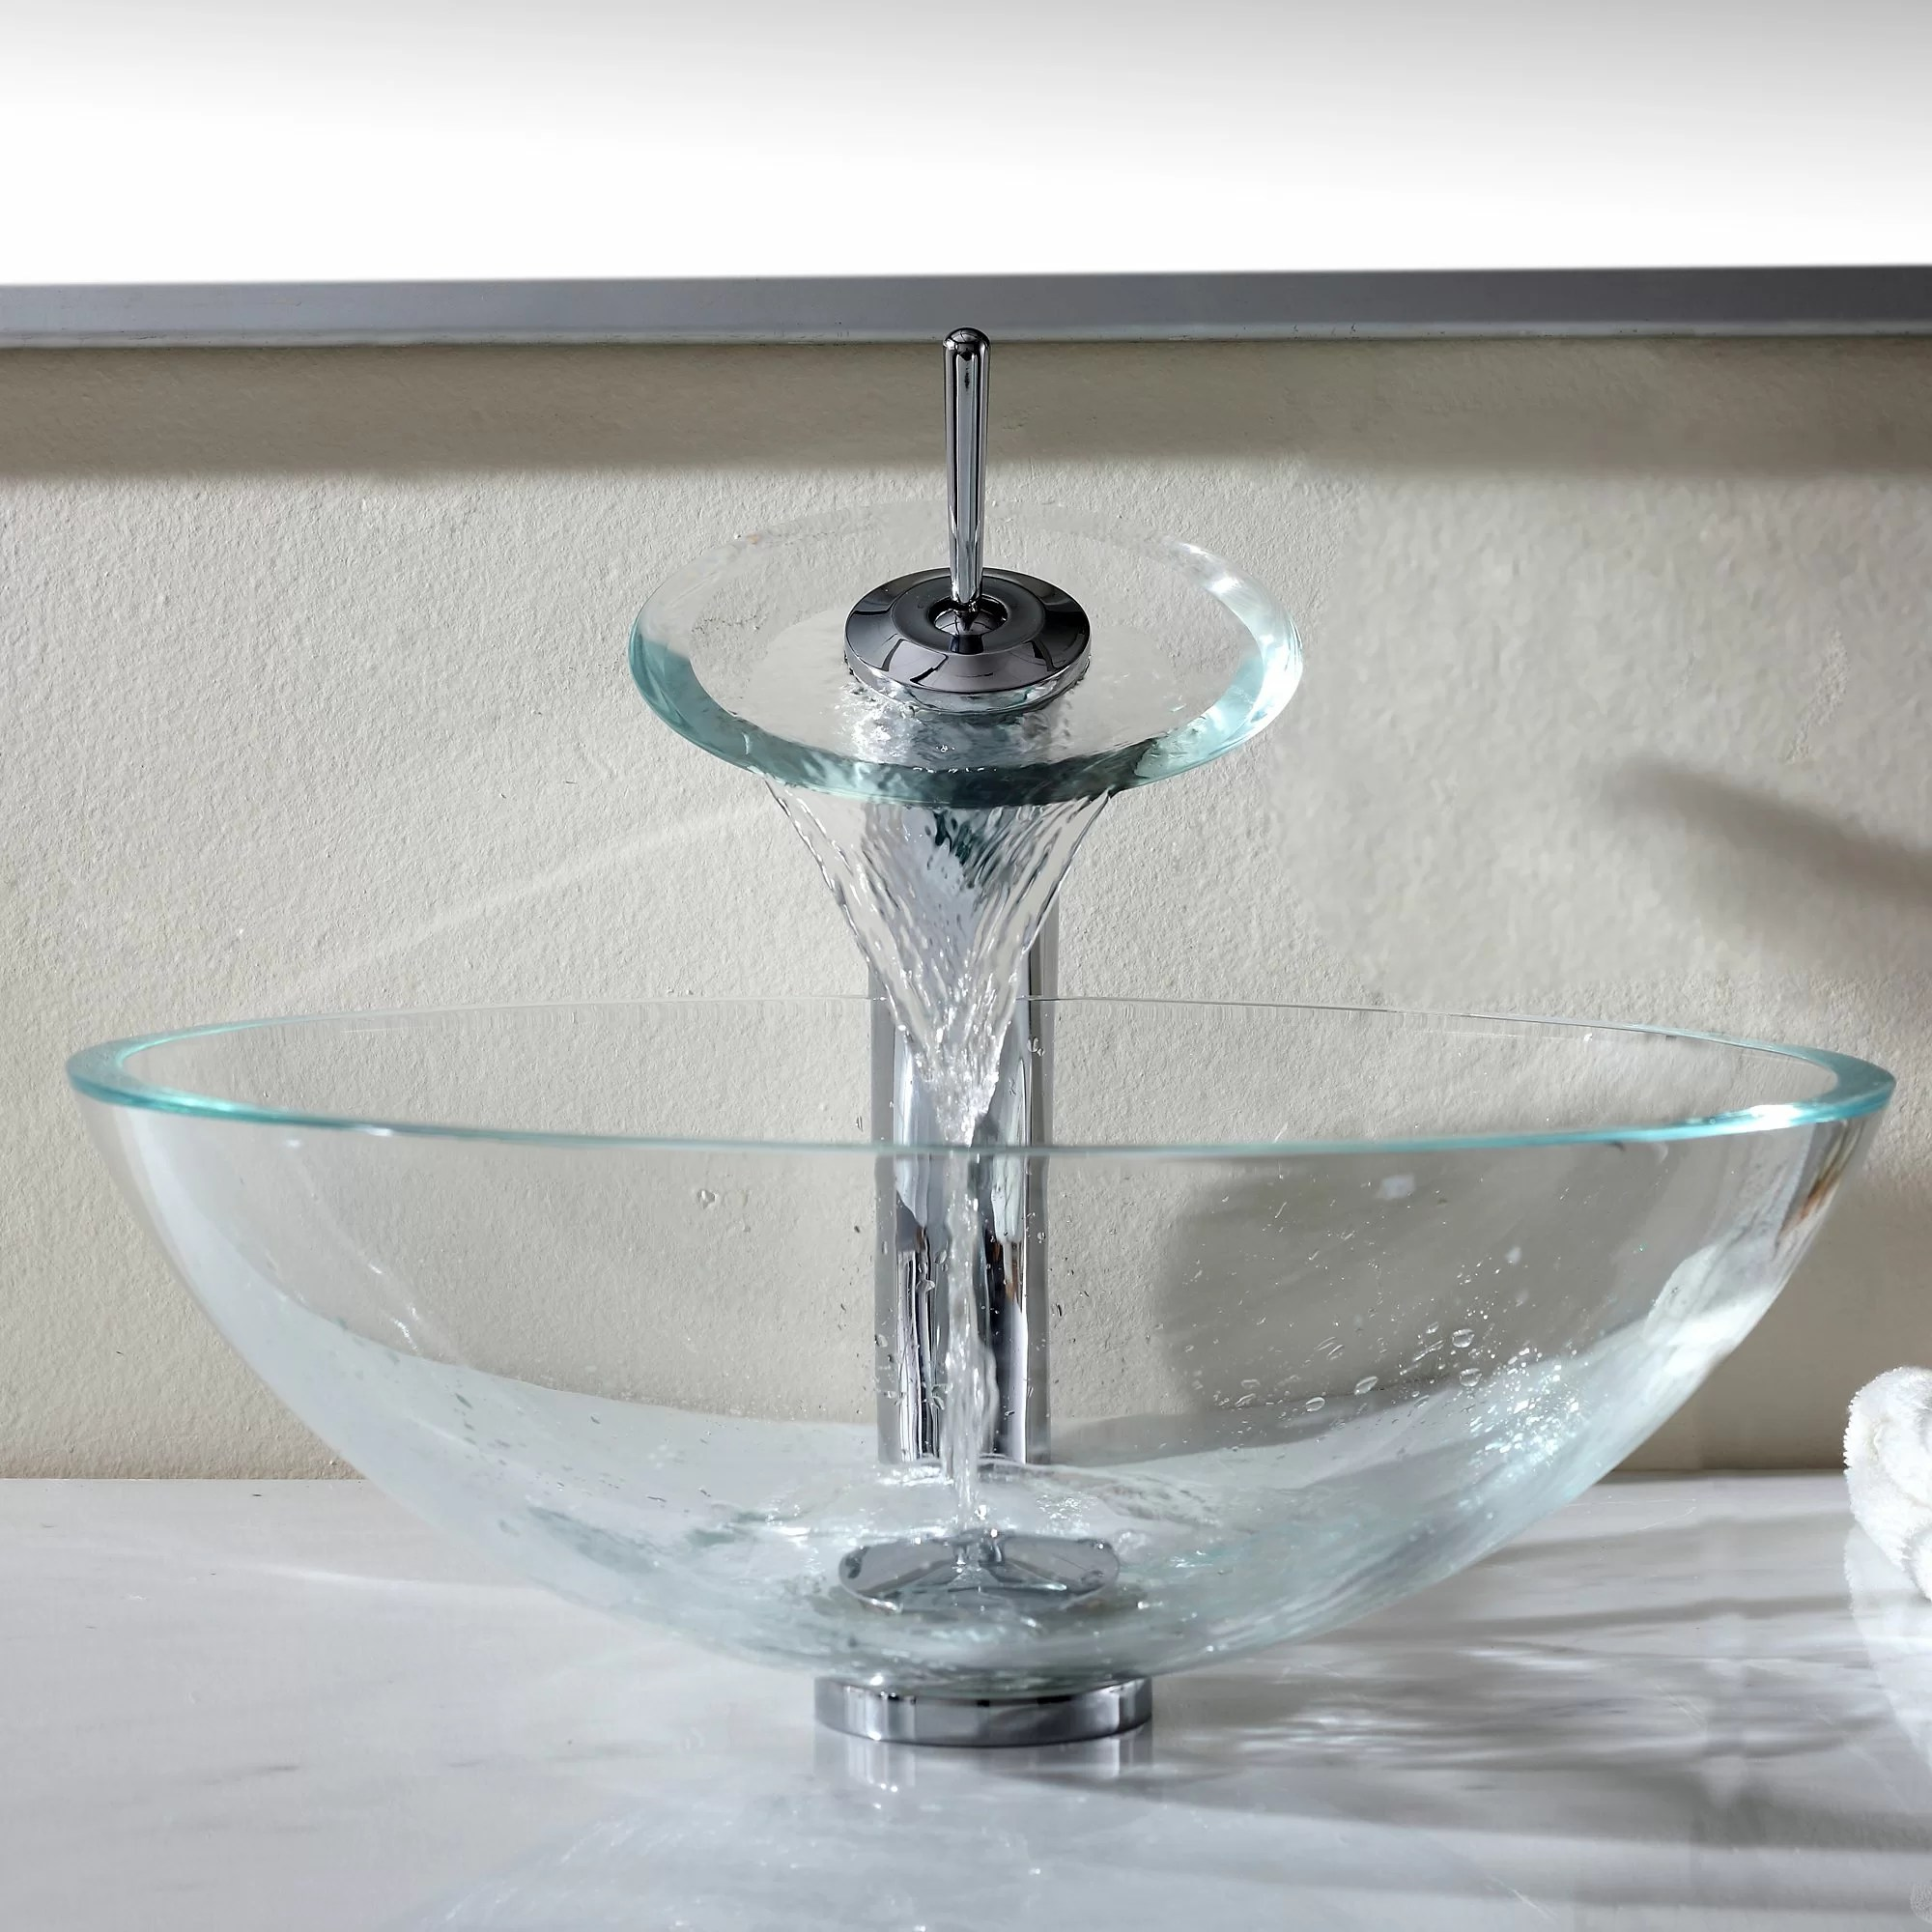 Waterfall Faucet For Vessel Sink Kraus Crystal Clear Glass Vessel Sink And Waterfall Faucet